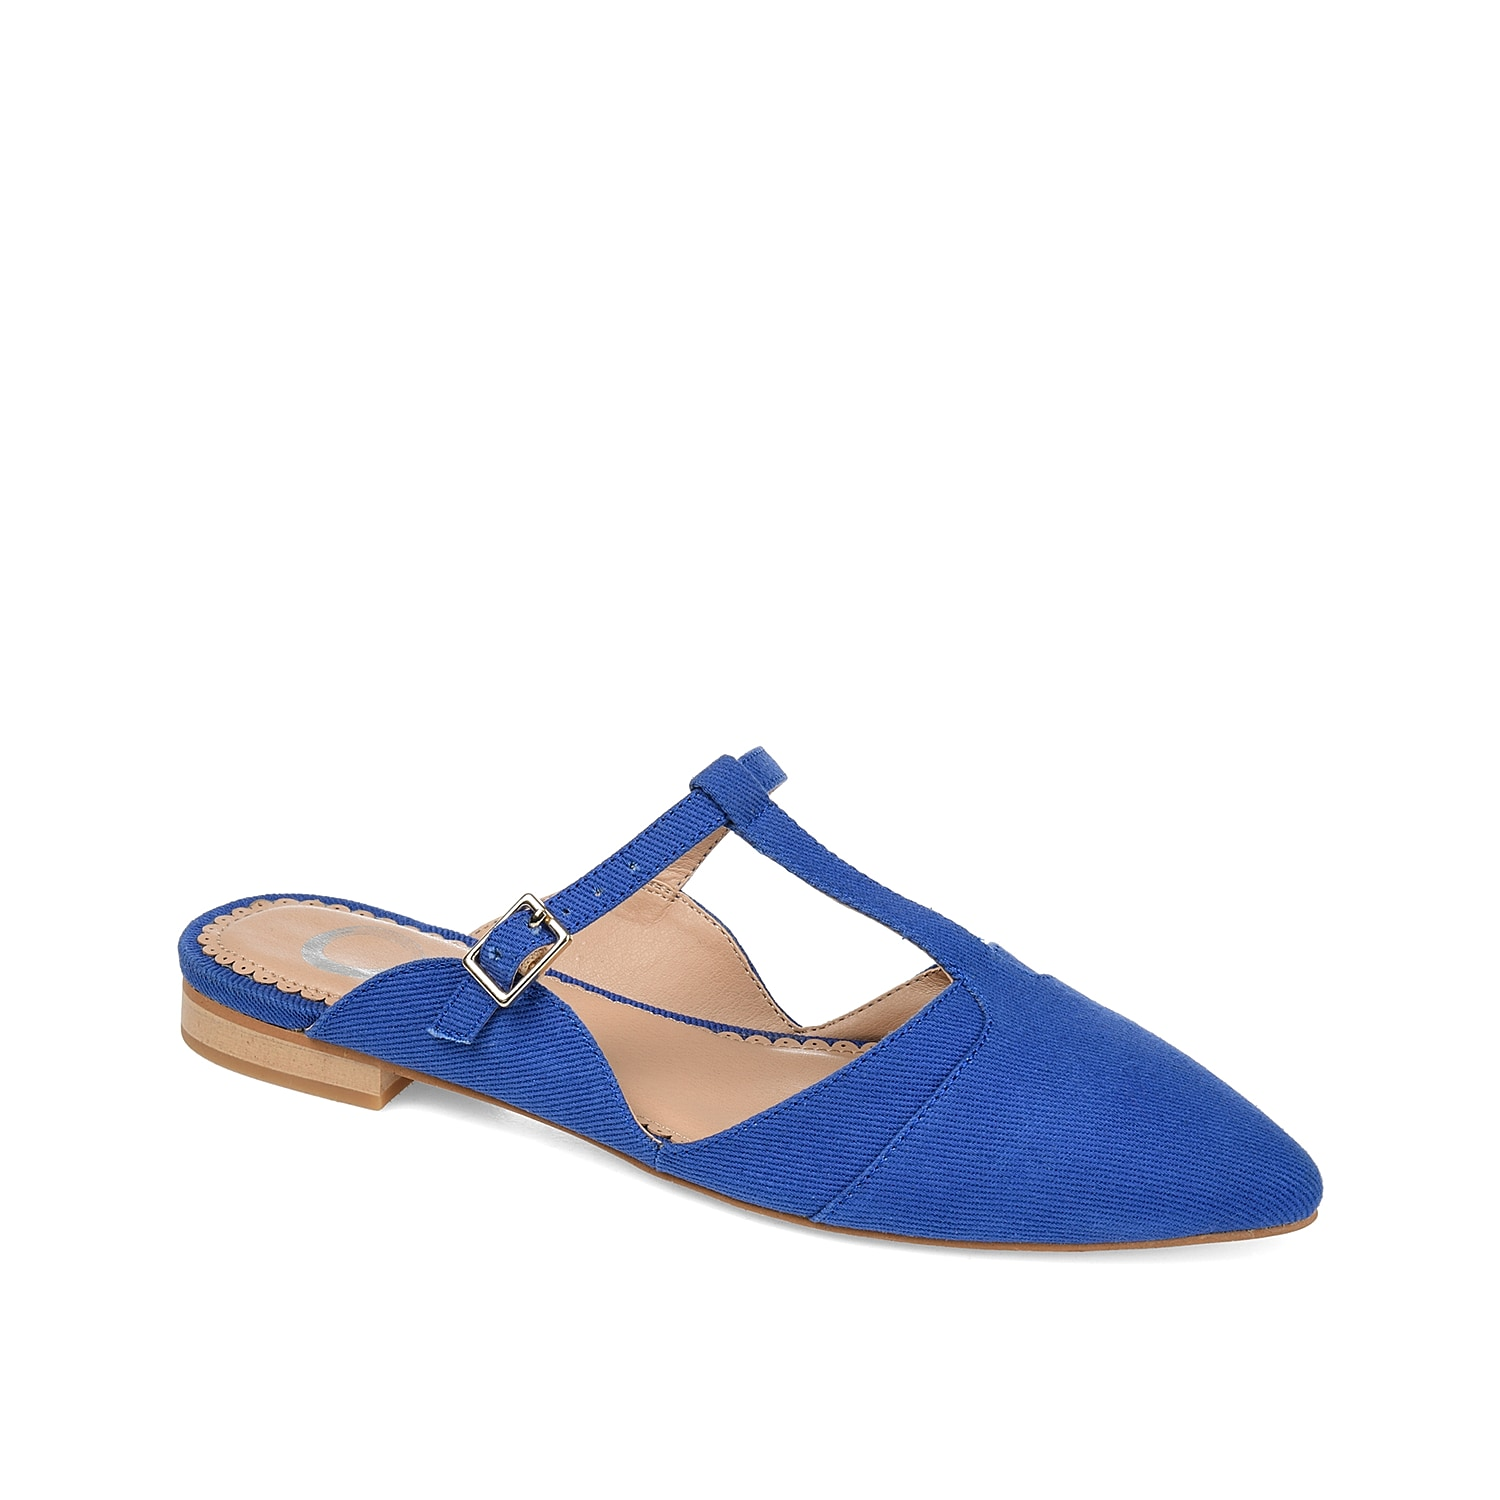 The Fernn mule from Journee Collection rocks a unique design that will give your look a pop of style. Featuring side cut outs and a t-strap buckle, this flat is easy to pair with anything from jeans to skirts.